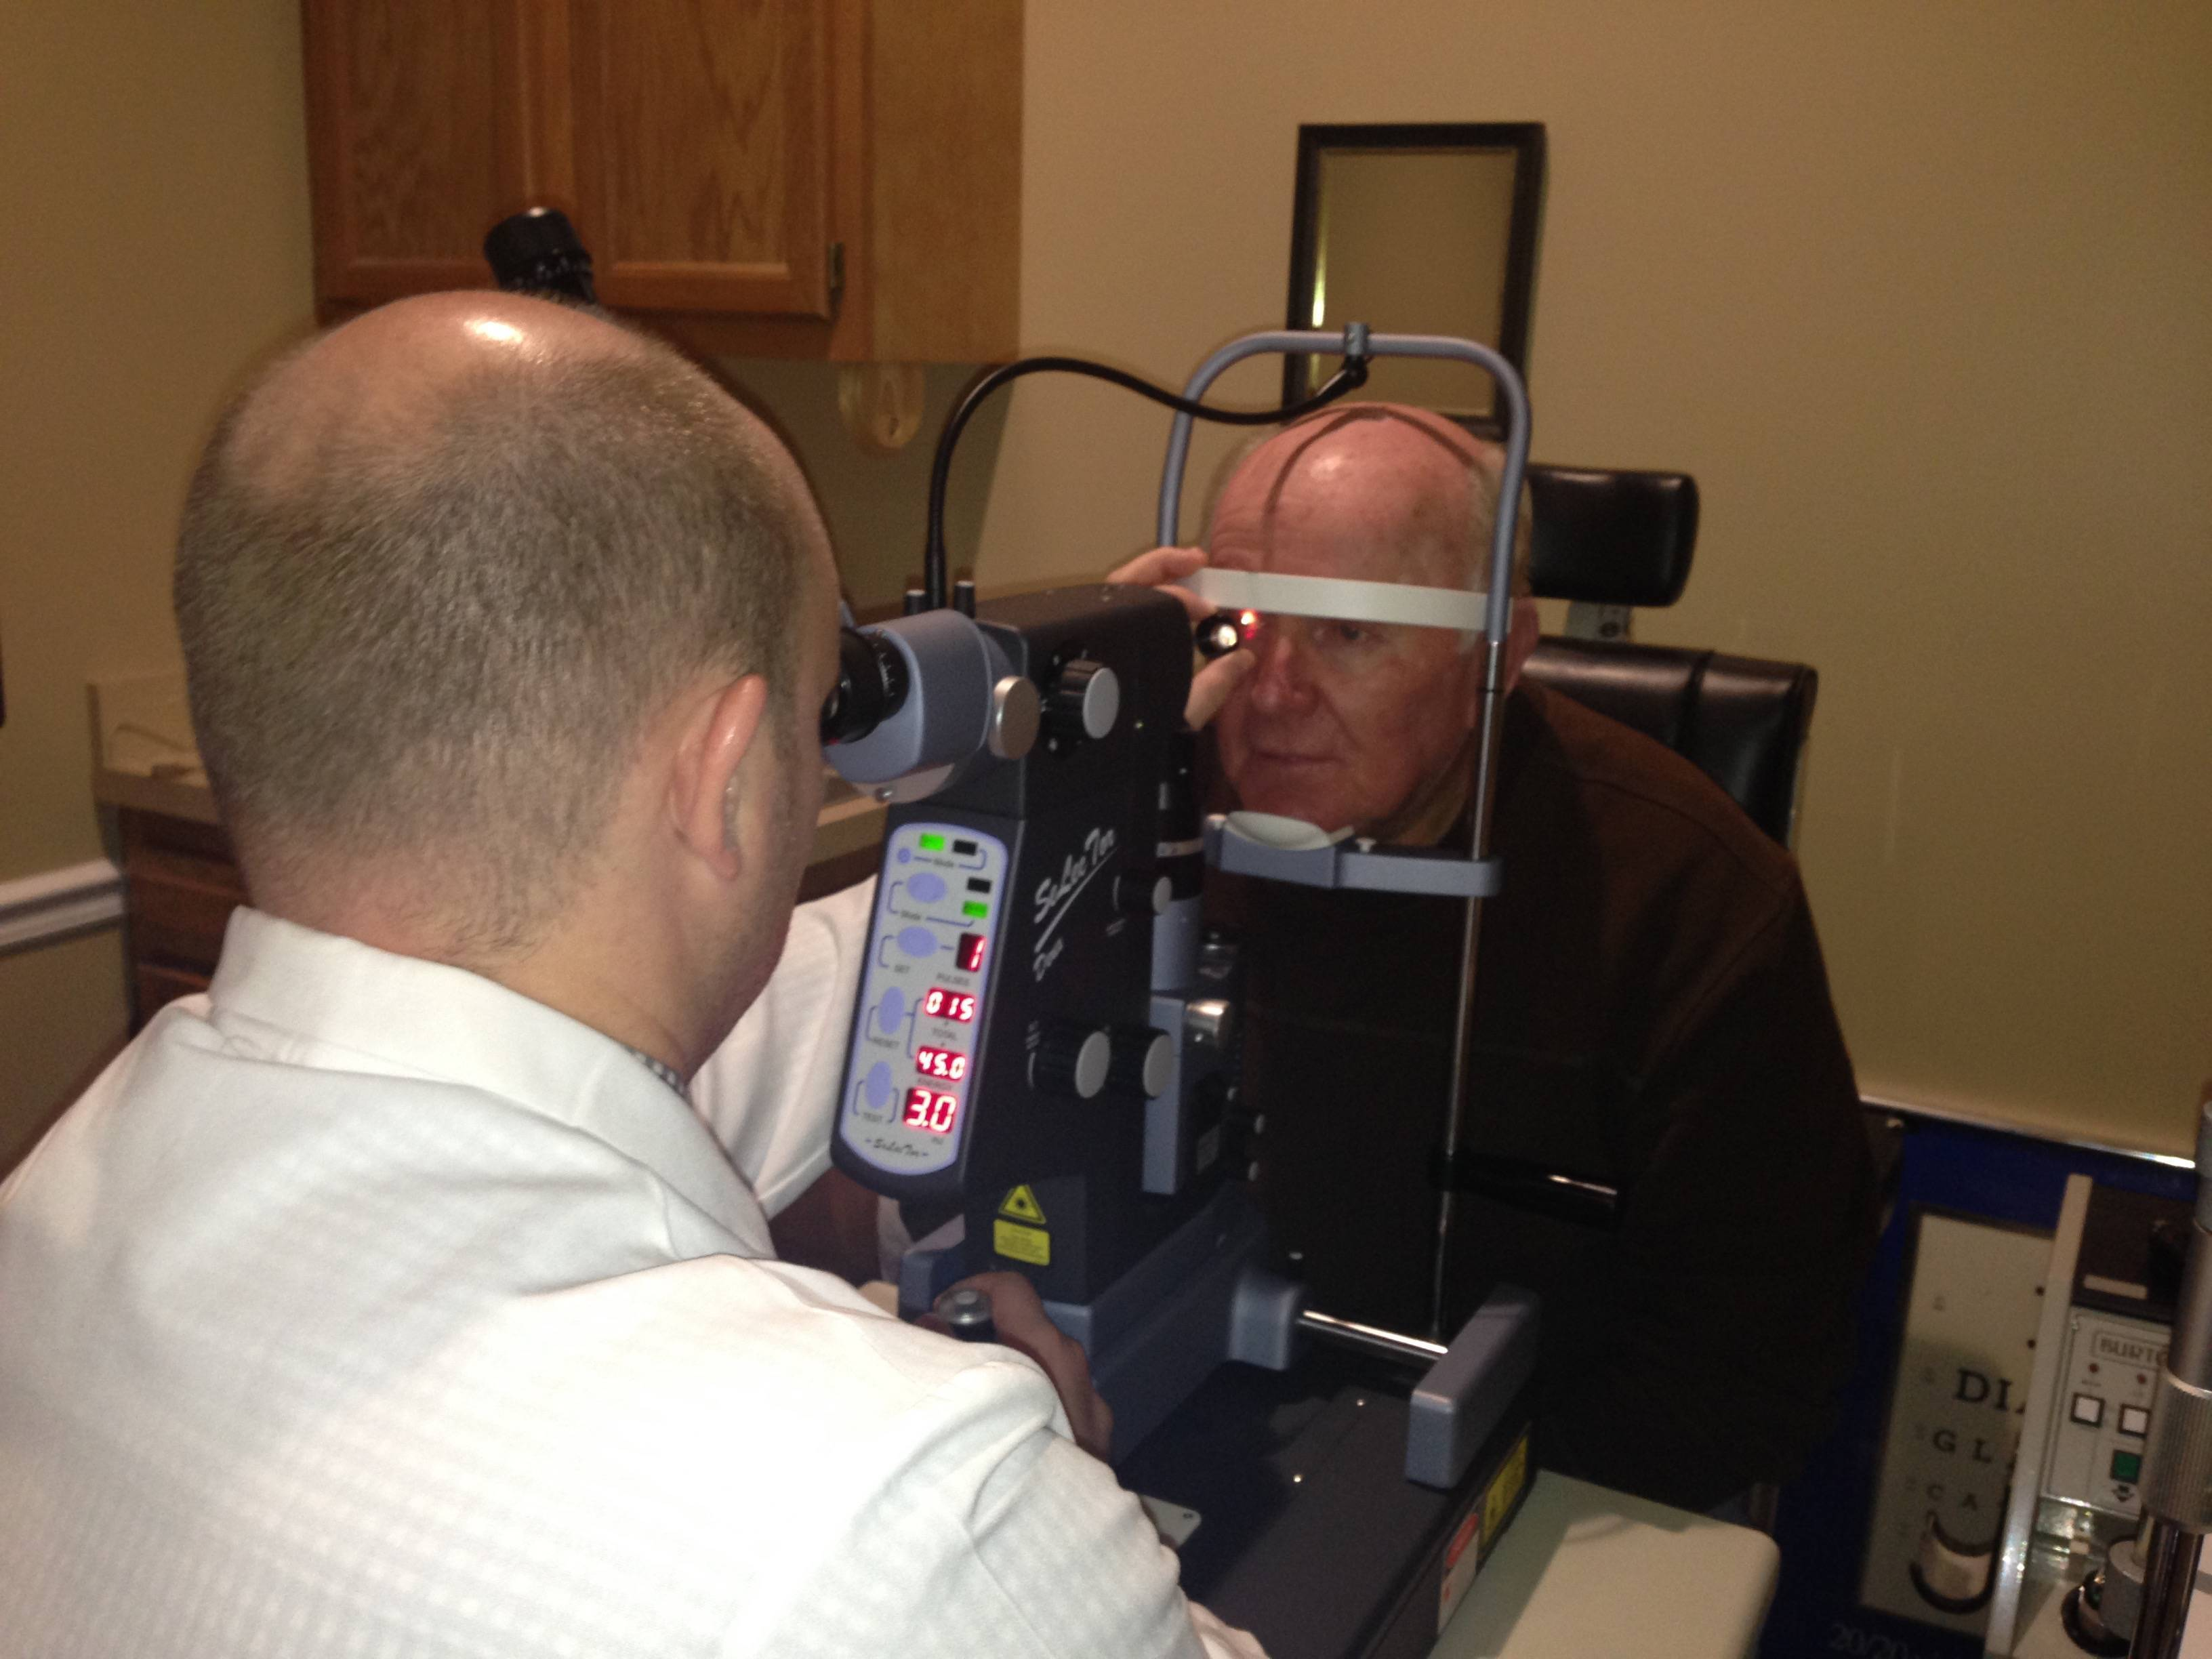 Dr. Burchett & YAG Laser Therapy Equipment